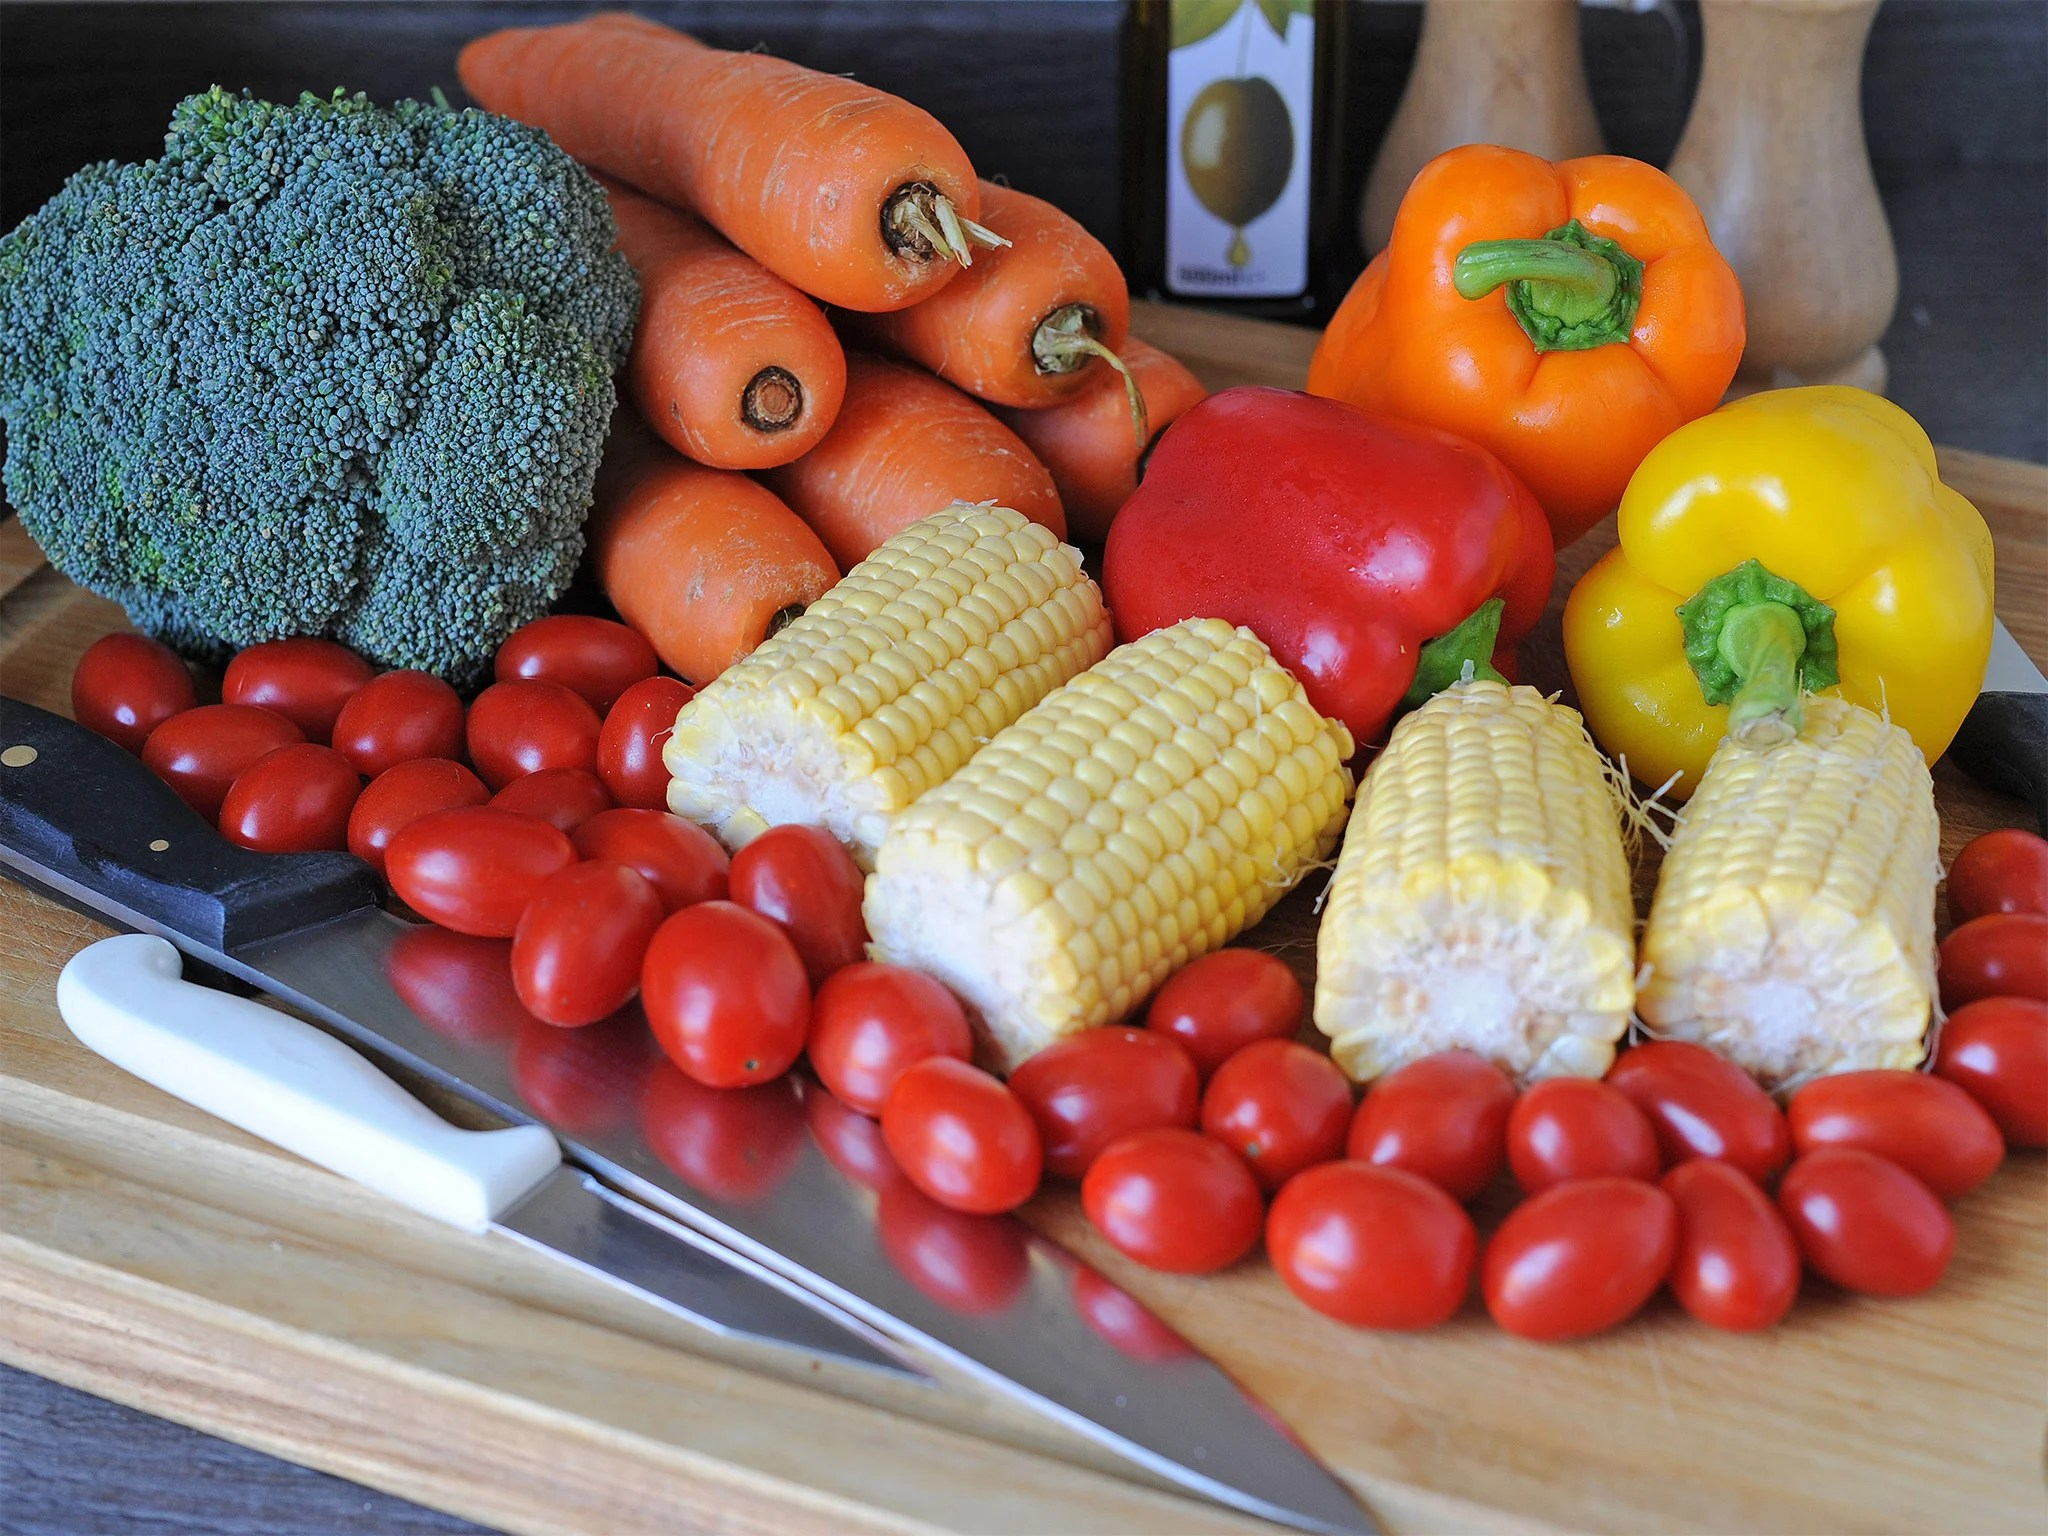 Healthy Food Now Costs Three Times As Much As Junk Study